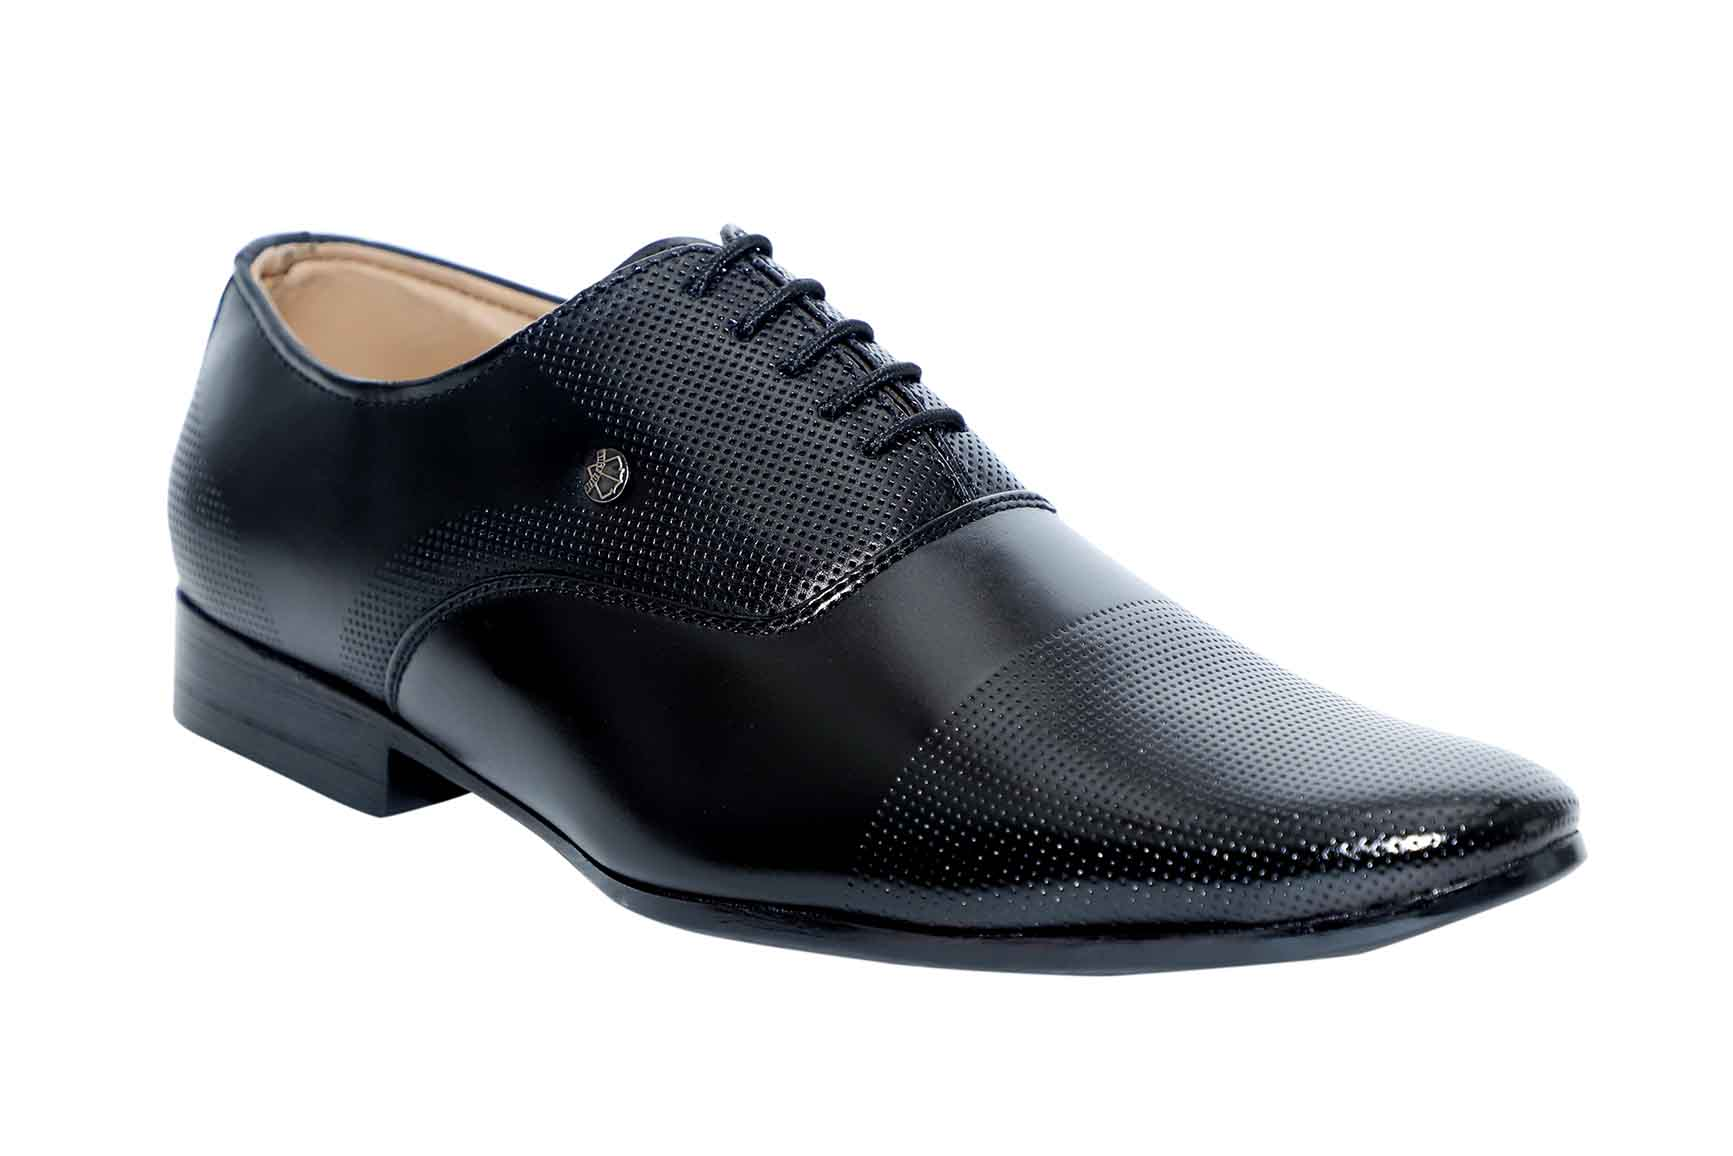 LZ-26-BLACK MN FORMAL SHOES